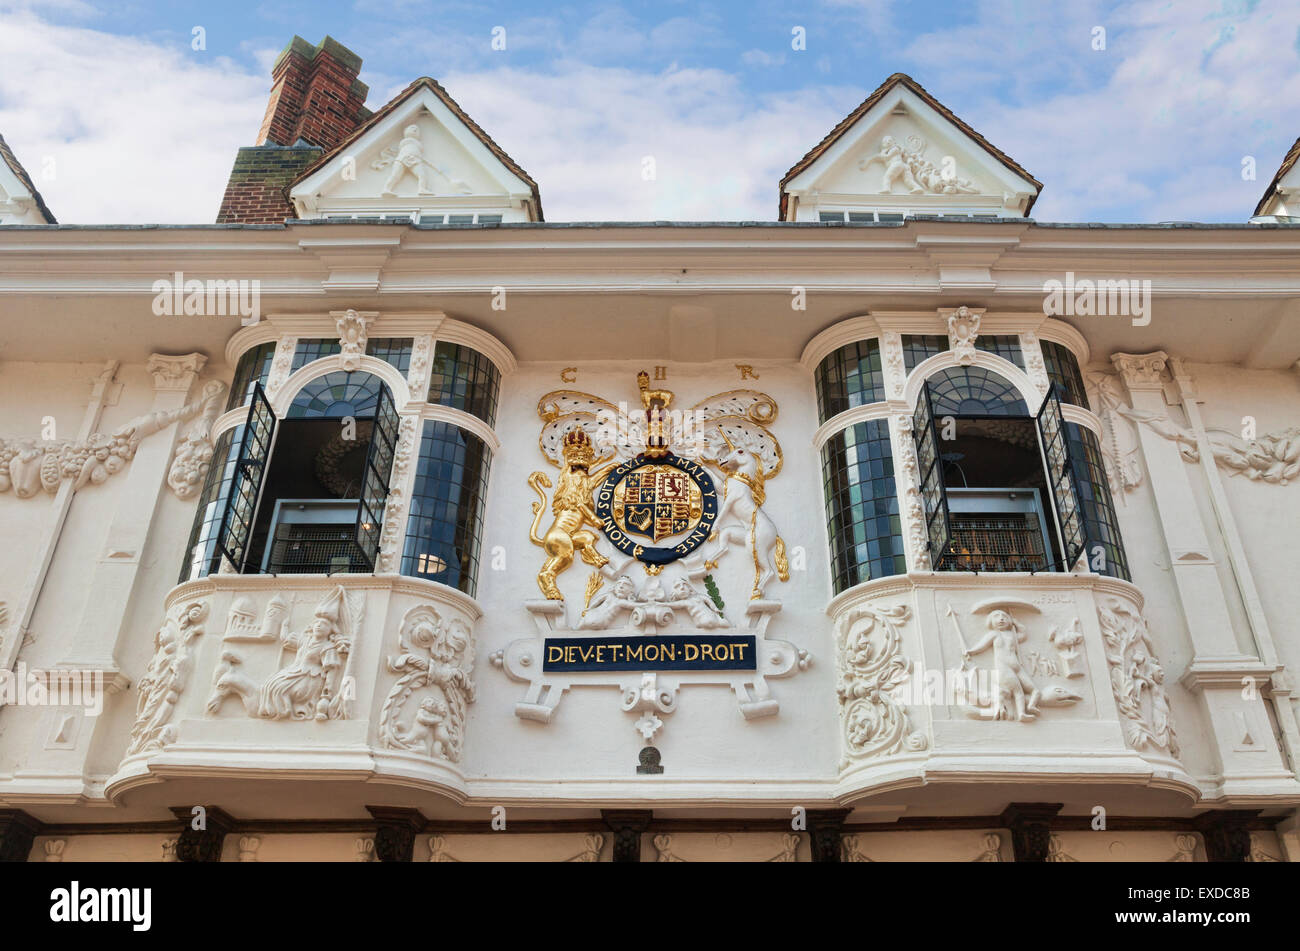 Ancient House decorated with pargeting, and with coat of arms, Ipswich, Suffolk, England Stock Photo